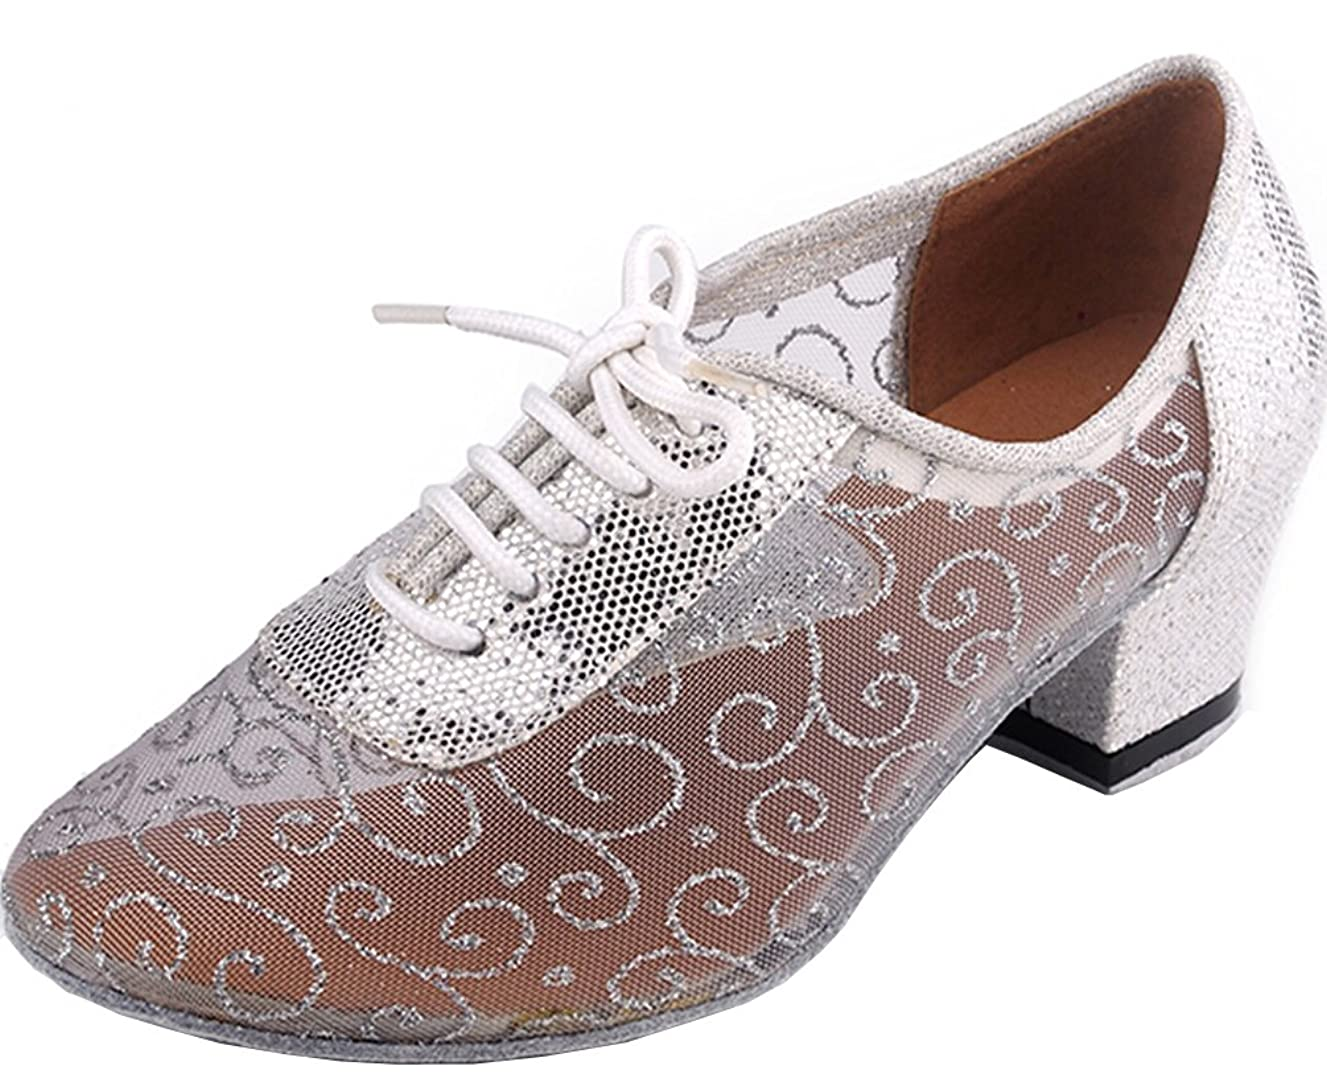 Abby AQ-900510 Womens Sexy Comfort Party Classical Low Heel Round-Toe Mesh Dance-Shoes